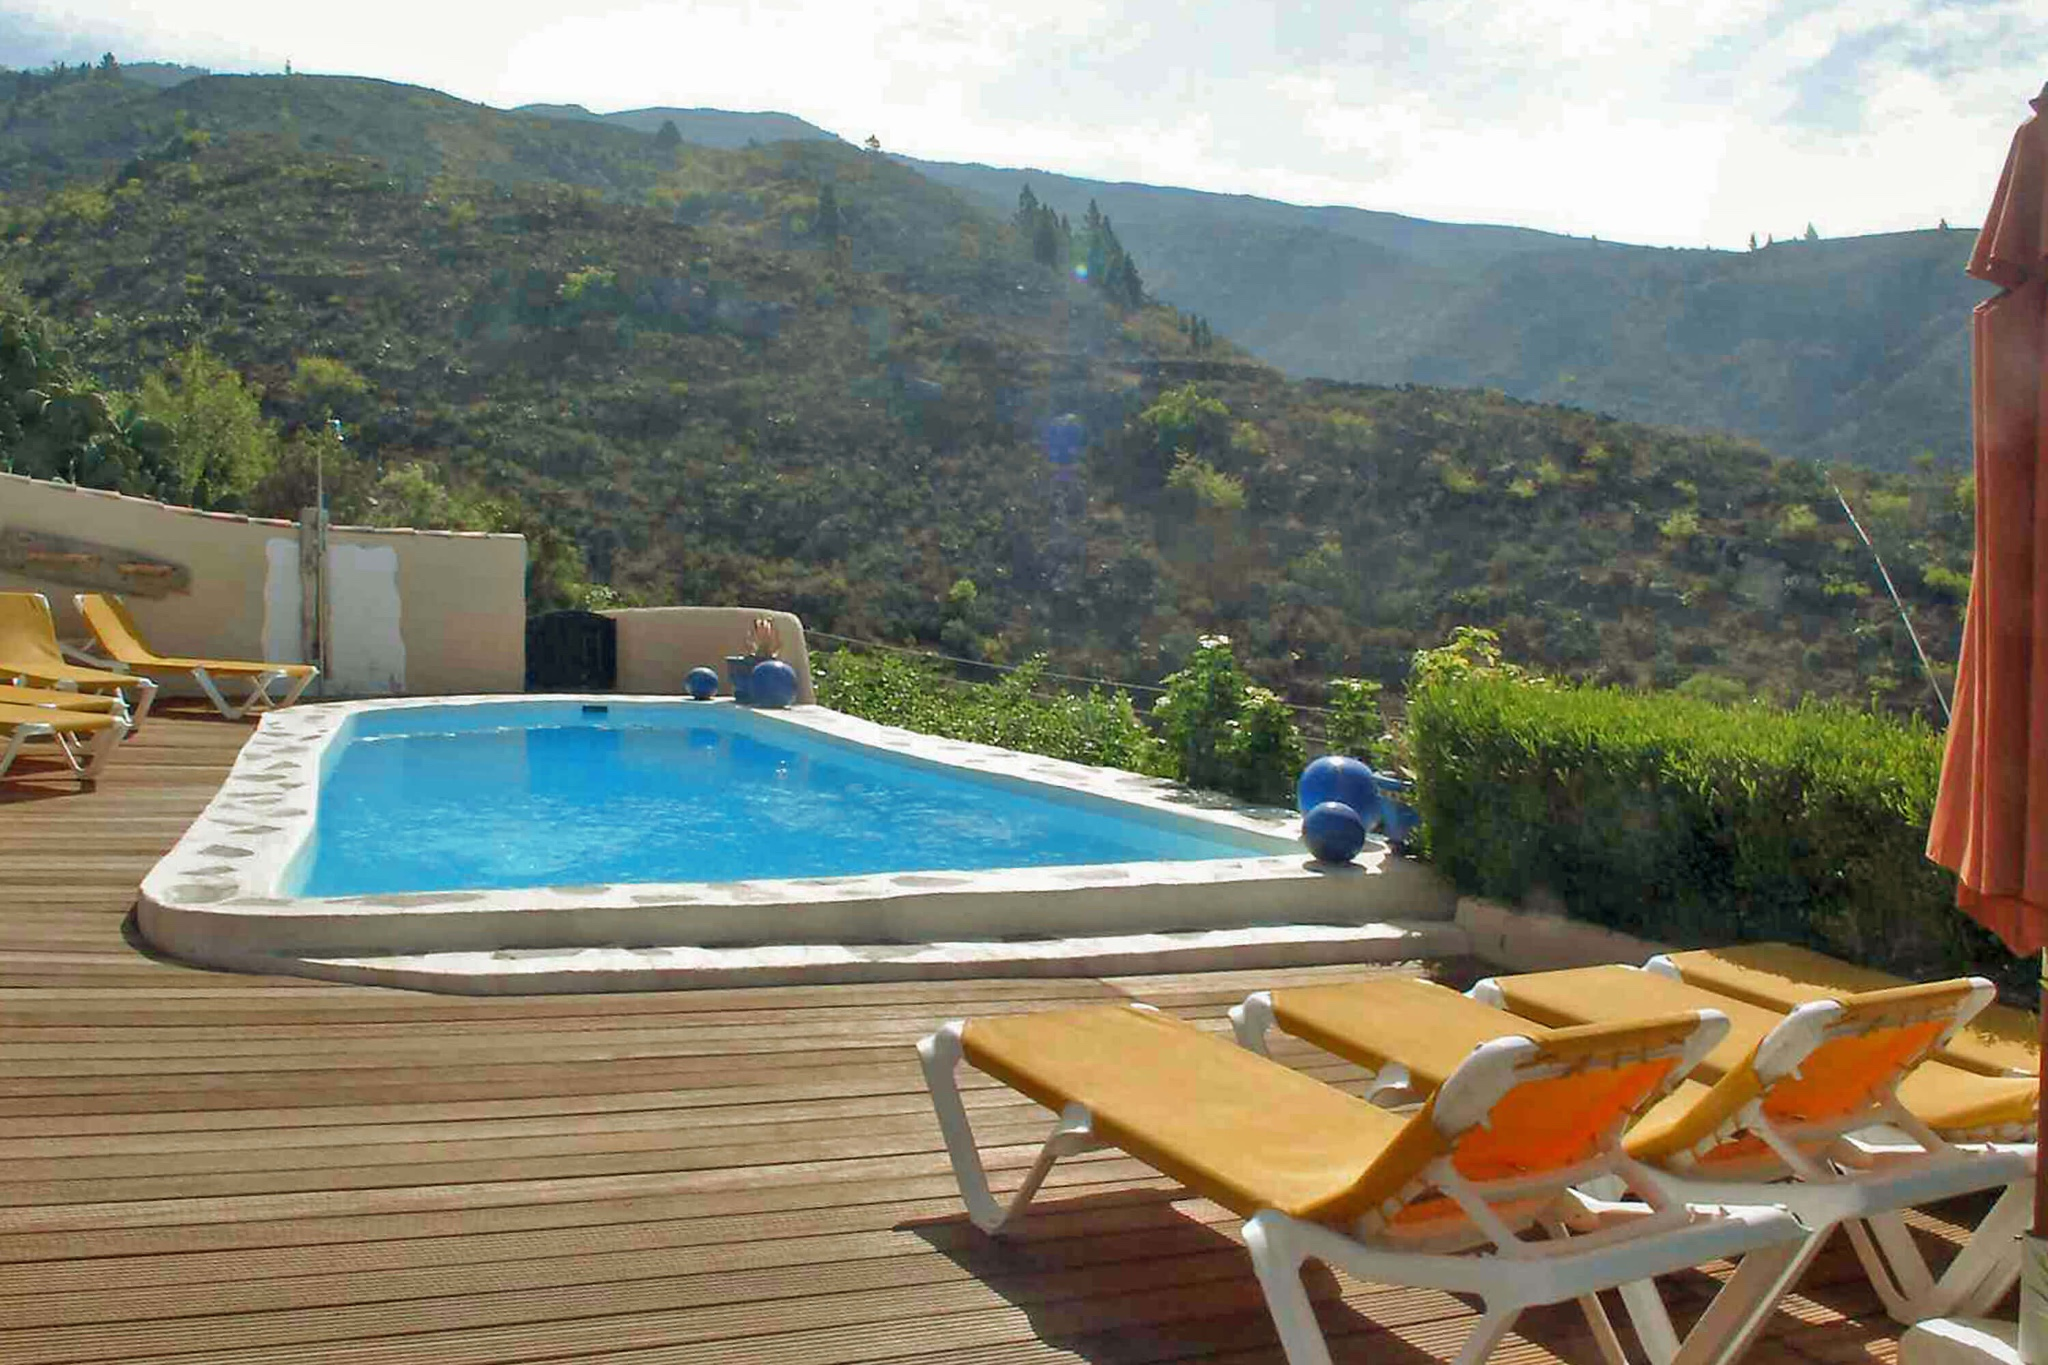 Beautiful country house for four people on a big property with community pool in the mountains of Tenerife with views of the Atlantic